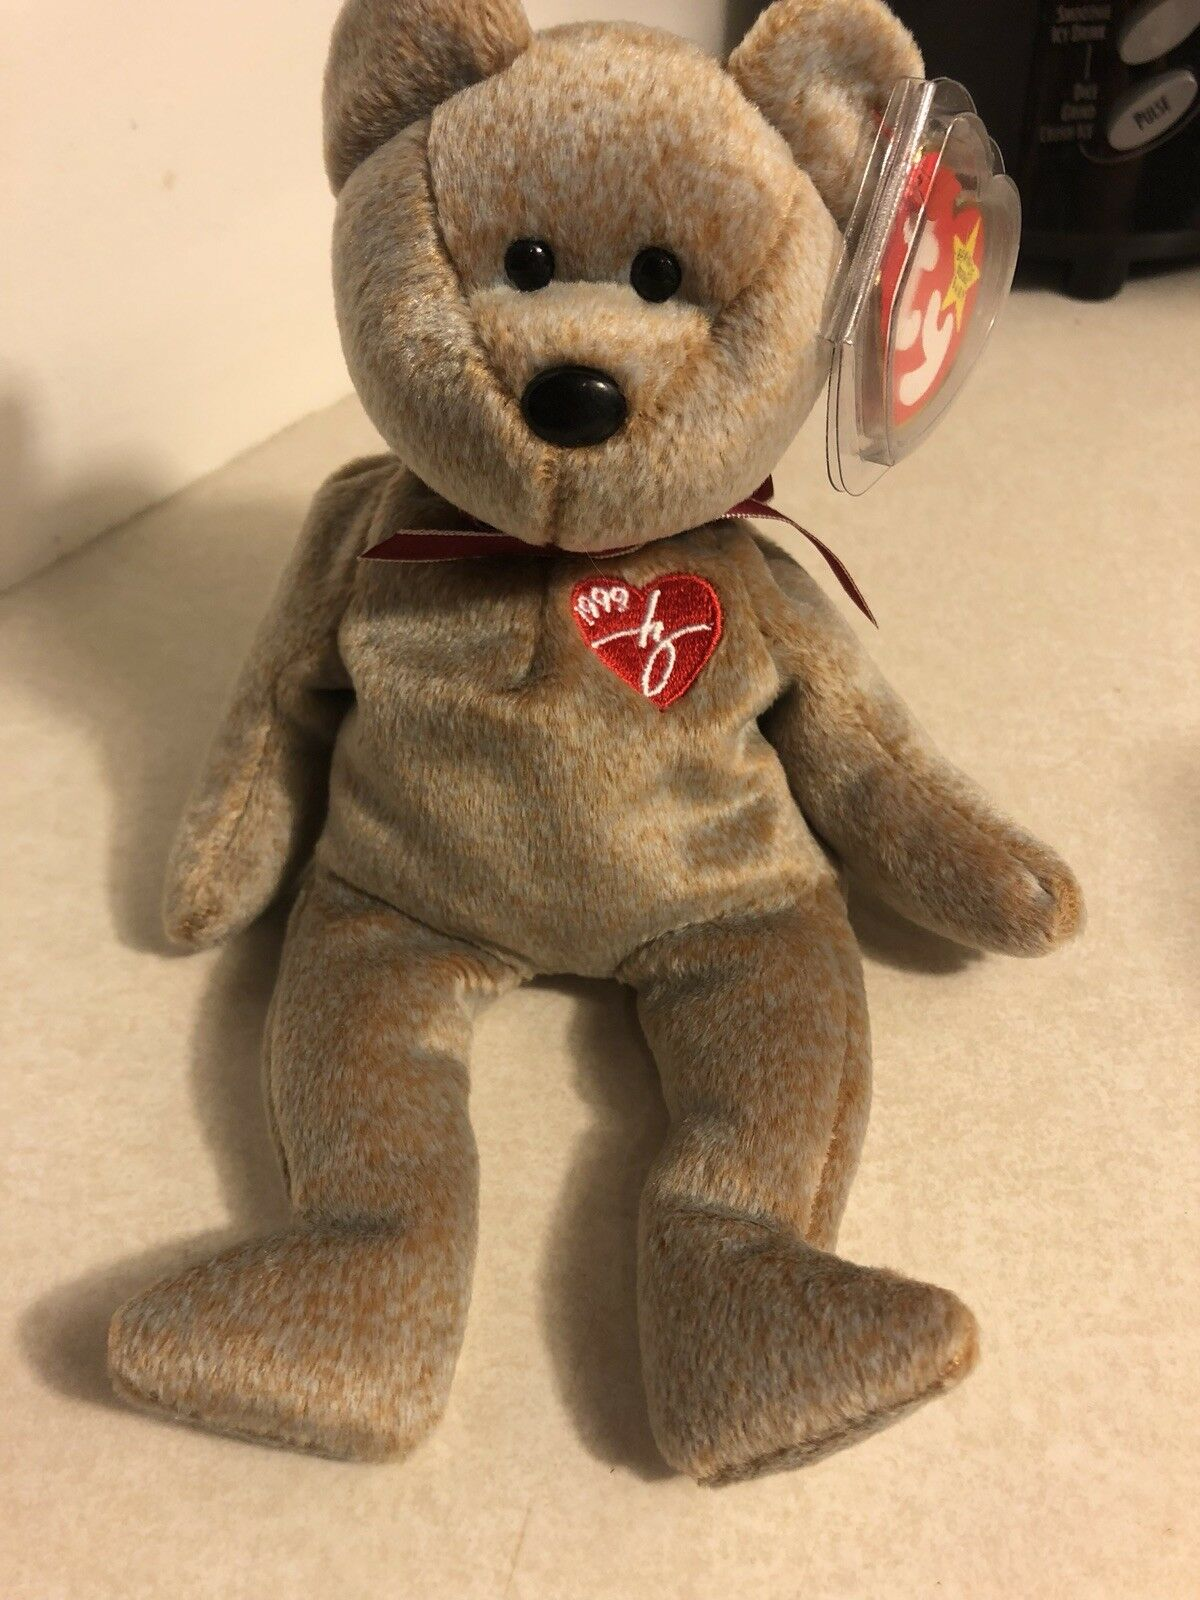 1999 Signature Beanie Baby - Excellent Condition - w tag errors